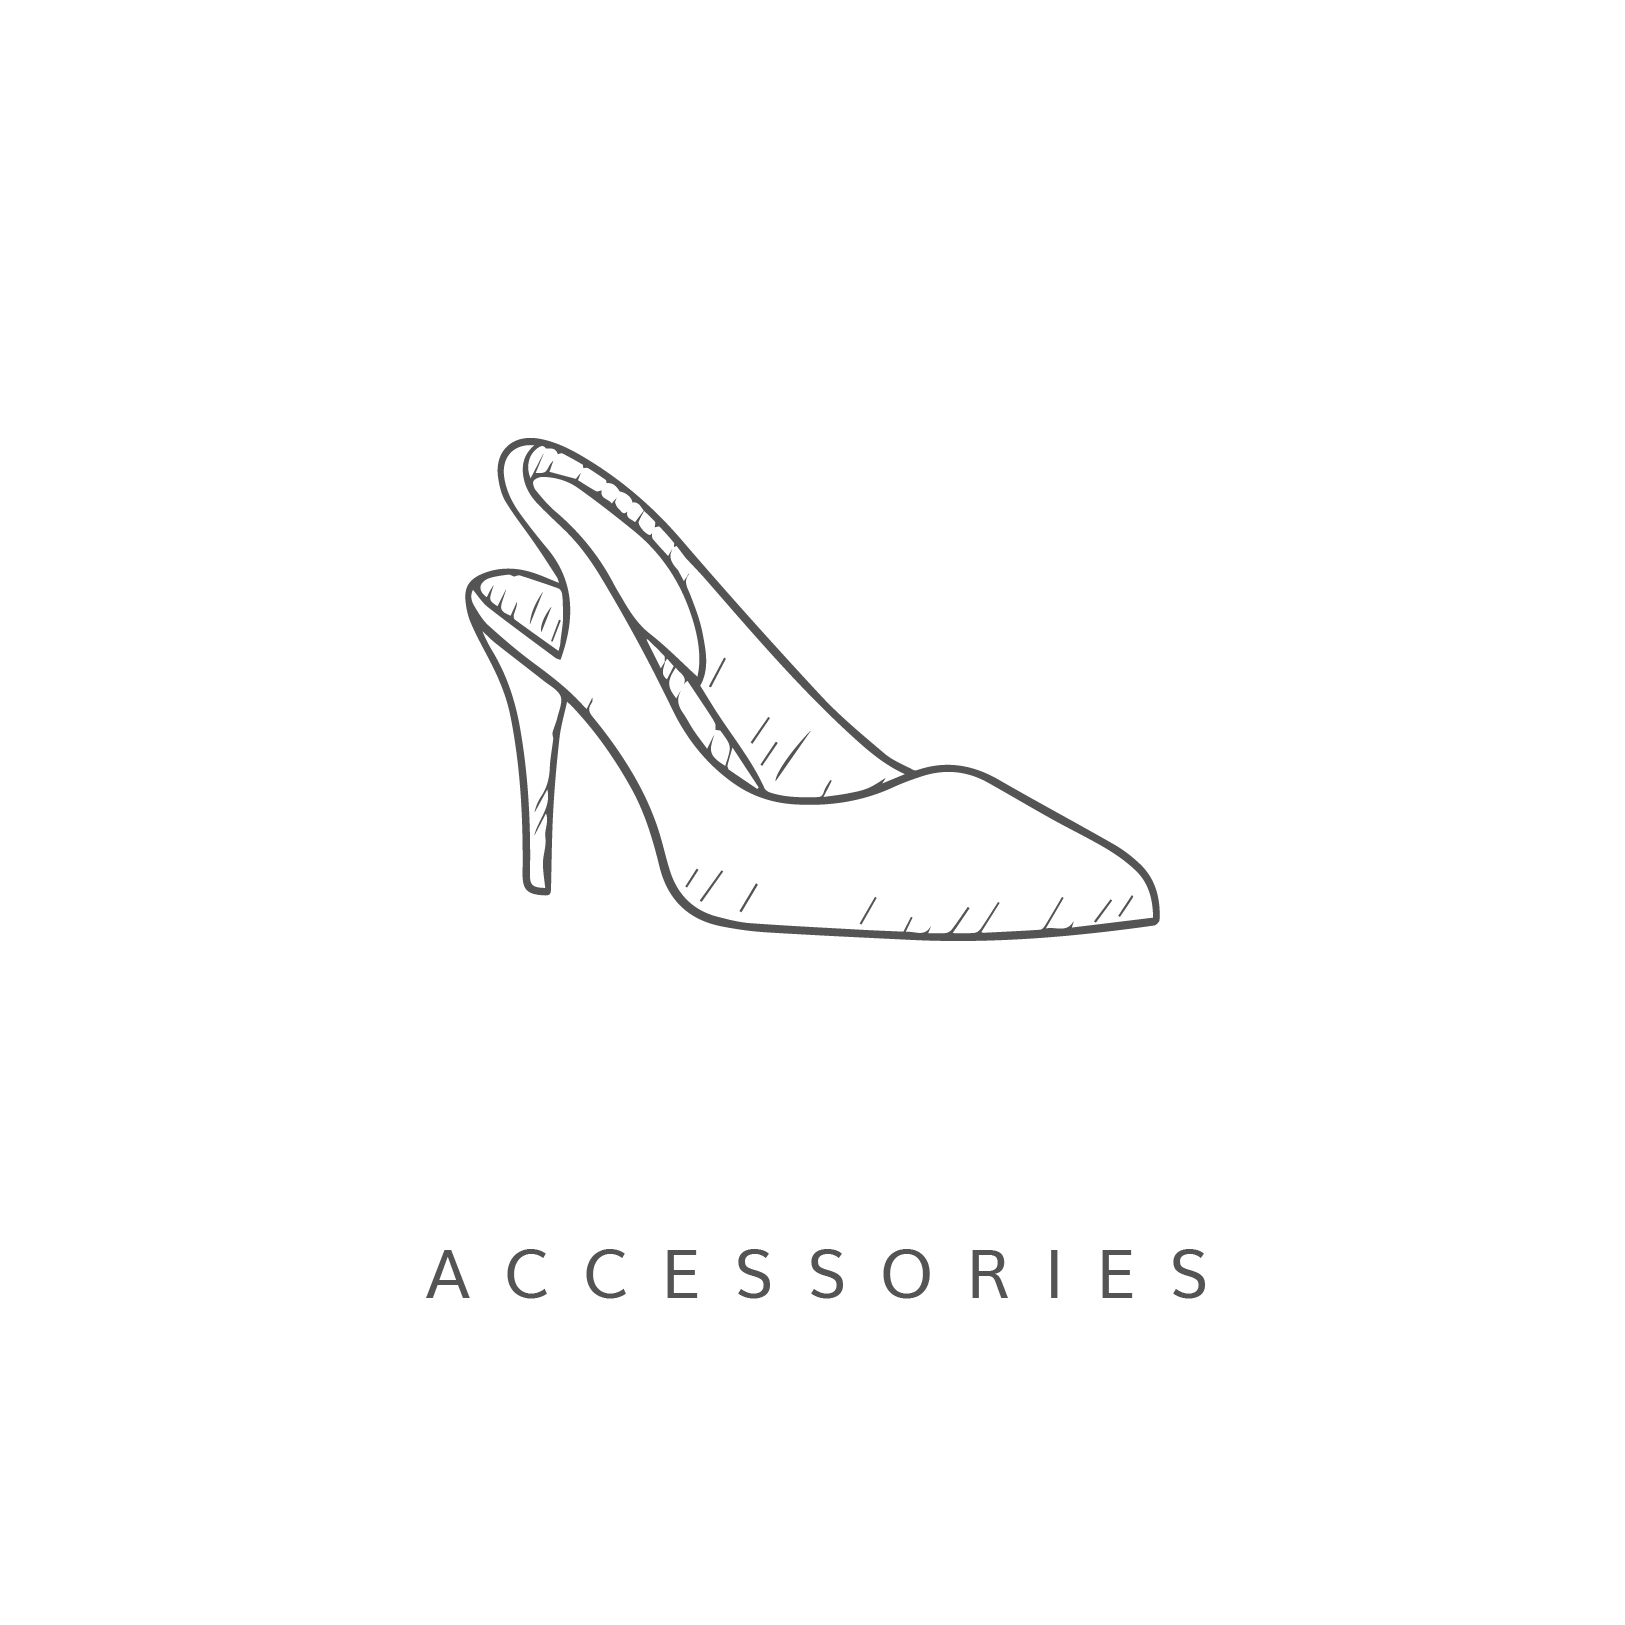 accessories-01.png